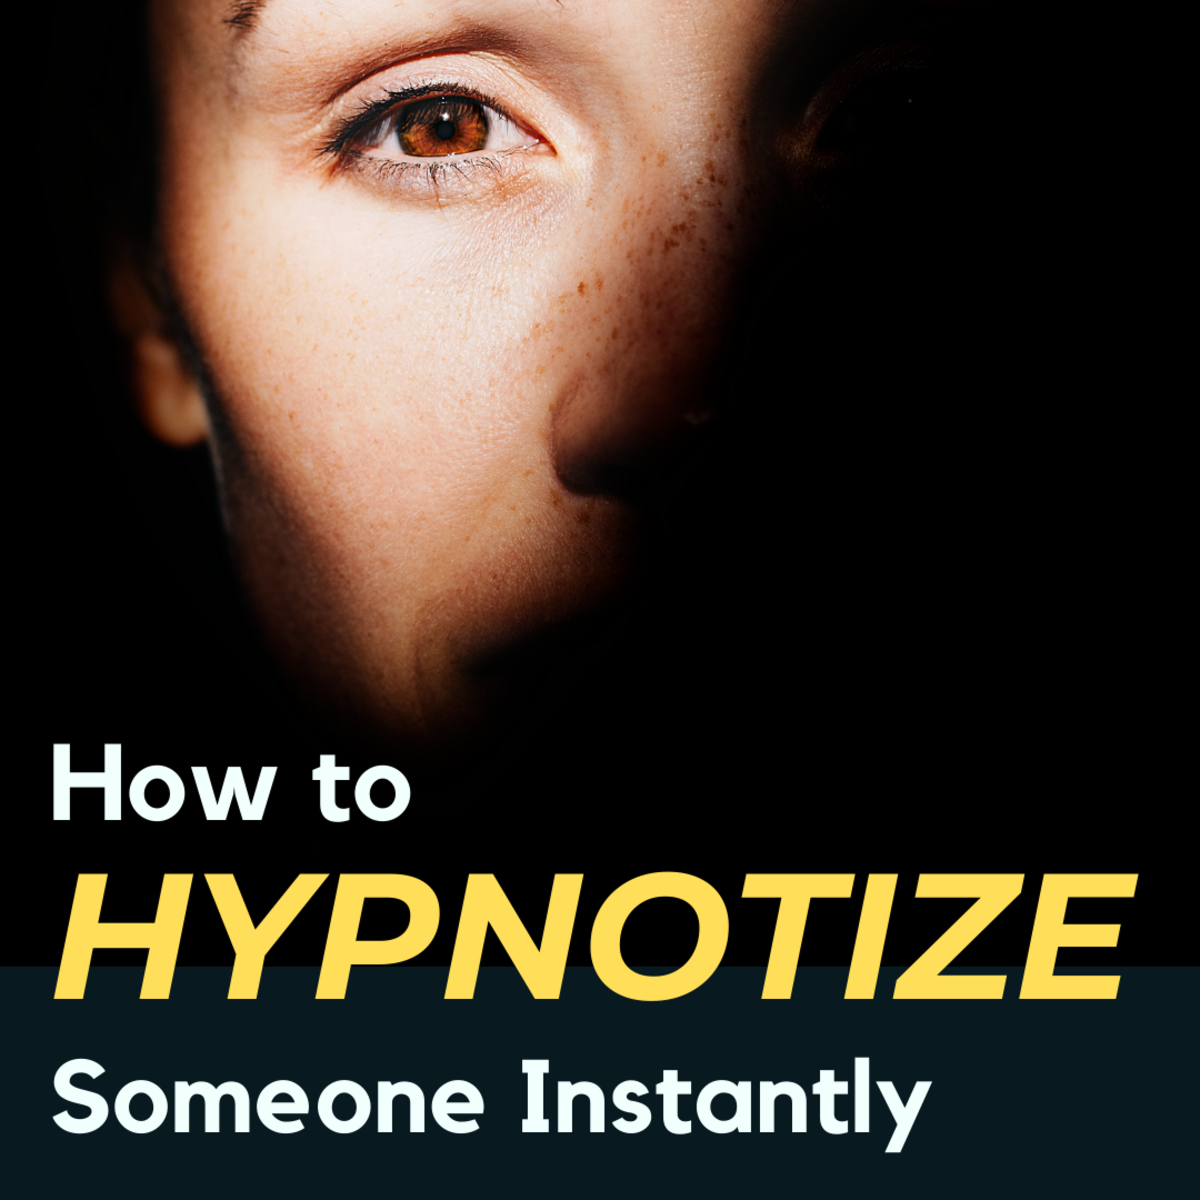 How to Hypnotize Someone in 5 Seconds